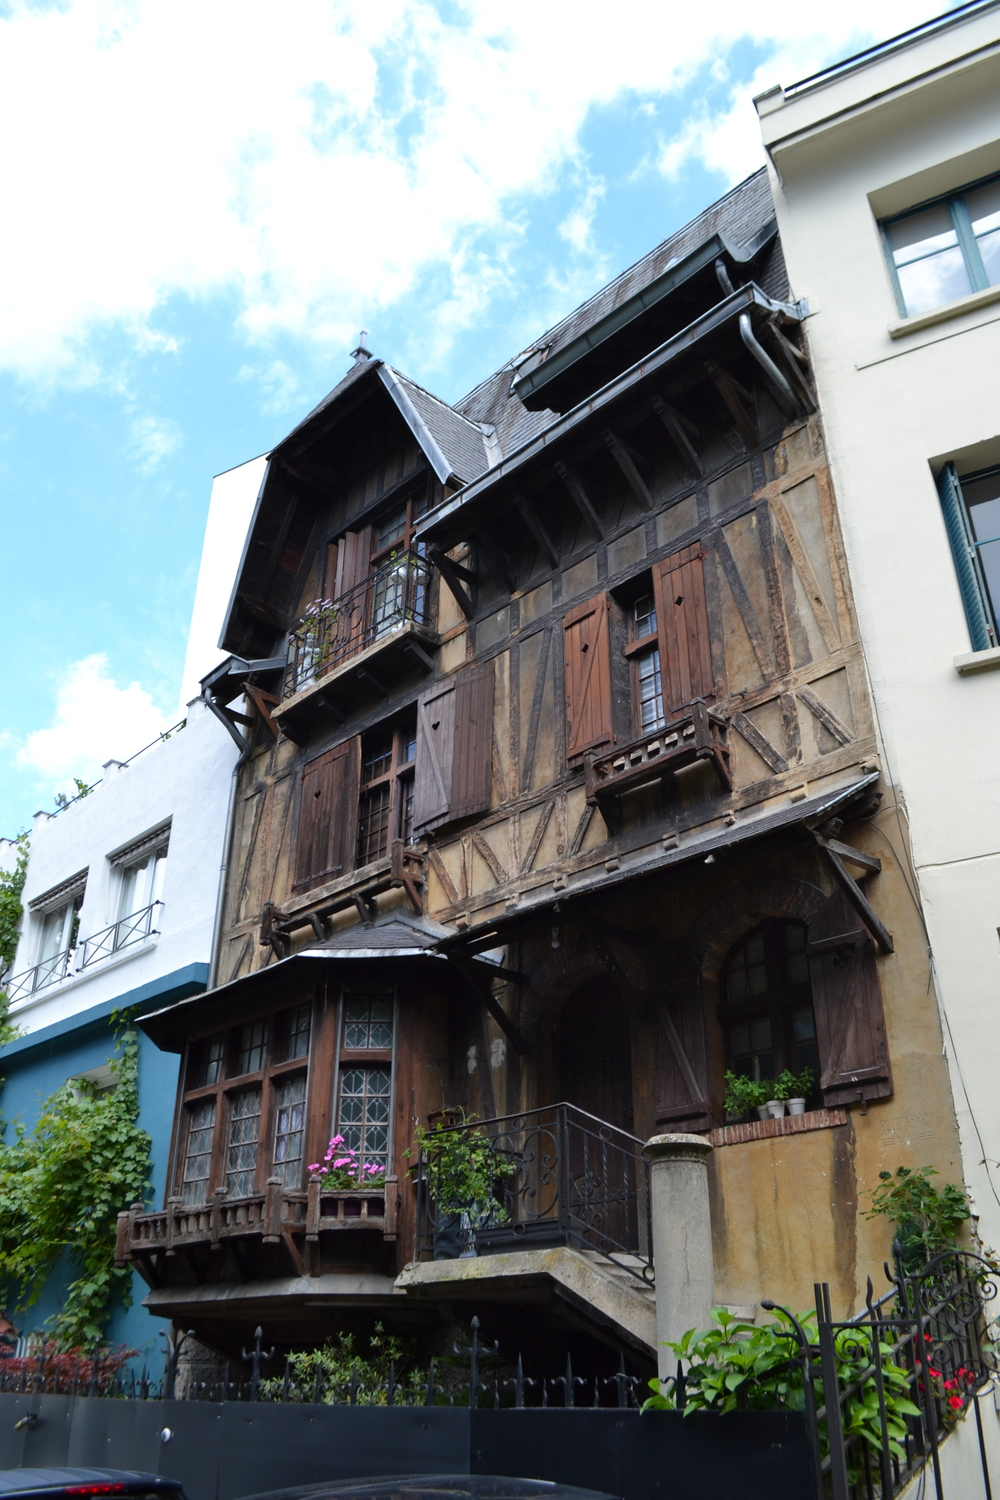 A 20th Century half-timbered house